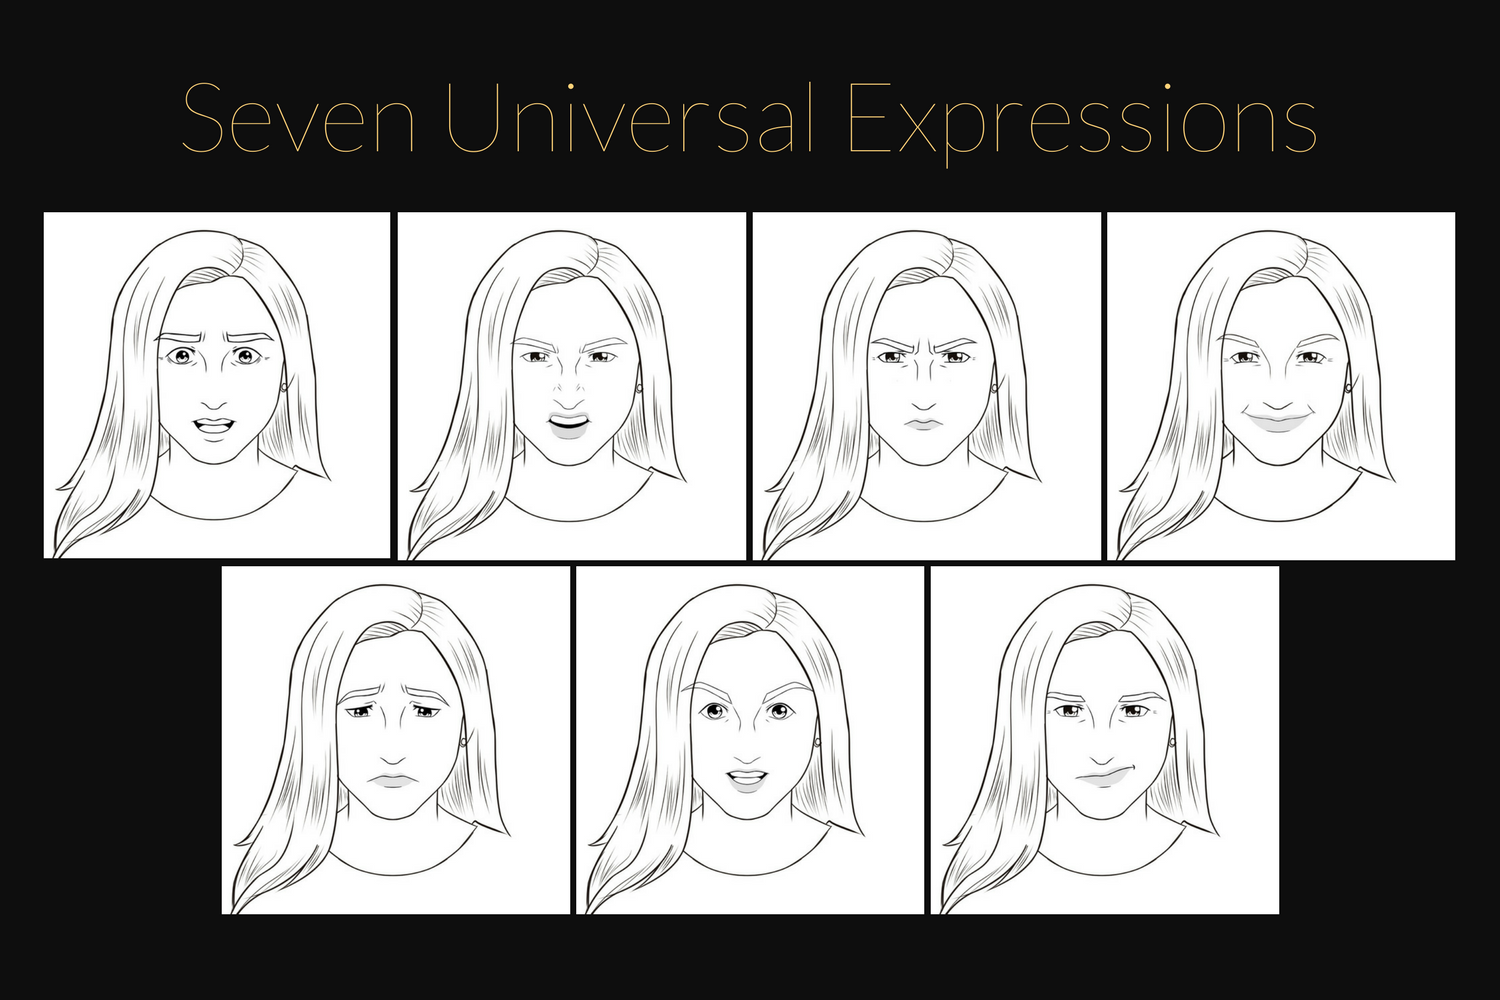 Seven Universal Expressions